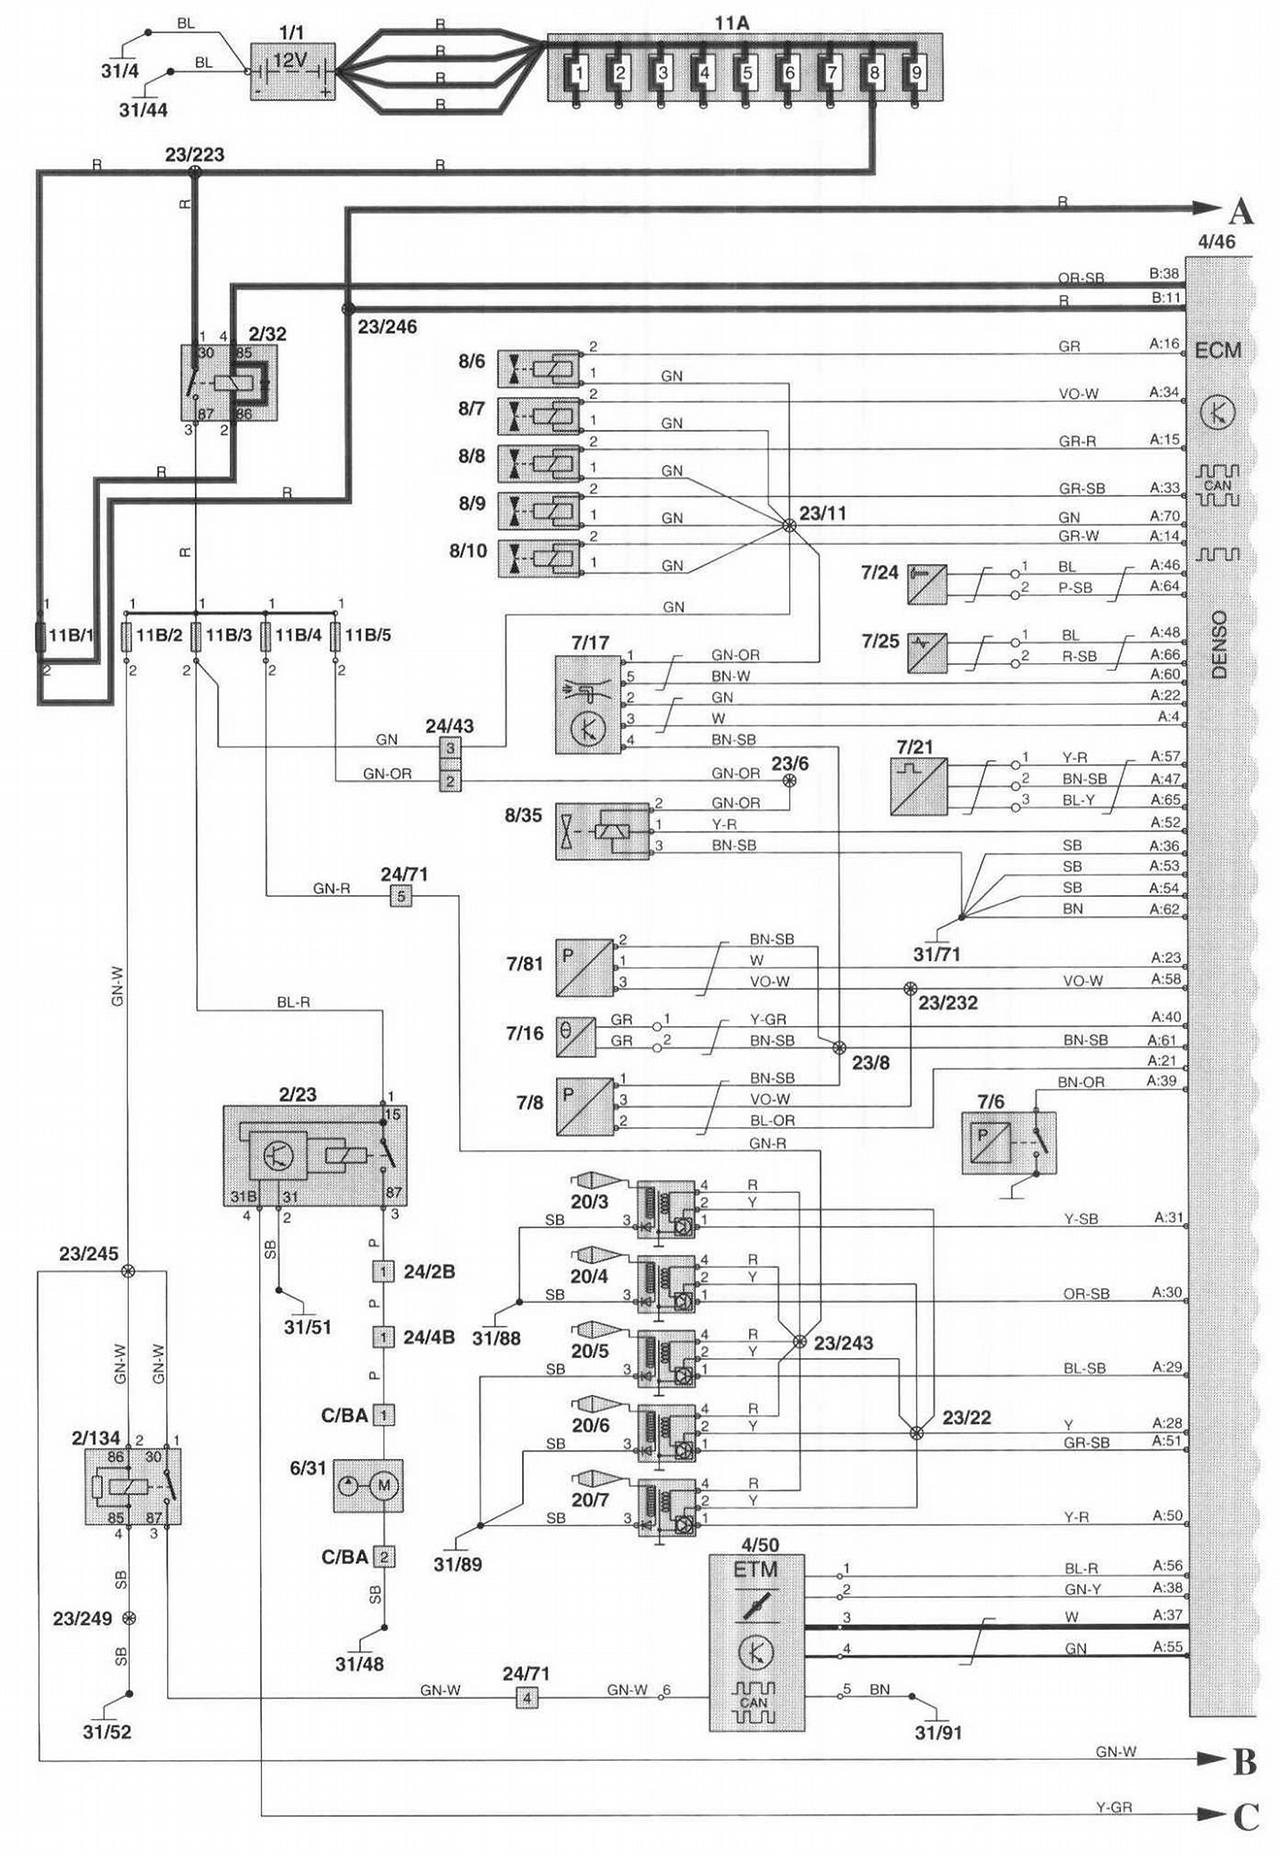 2007 Volvo S40 Fuse Diagram | Wiring Diagram on jeep cherokee wiring diagrams, pontiac grand prix wiring diagrams, pontiac 6000 wiring diagrams, dodge ram 50 electrical system, dodge ram 50 engine, ford f350 wiring diagrams, ford mustang wiring diagrams, dodge ram 50 repair manual, dodge ram 50 front suspension, ford courier wiring diagrams, plymouth voyager wiring diagrams, ford expedition wiring diagrams, ford ranger wiring diagrams, ford thunderbird wiring diagrams, buick reatta wiring diagrams, chrysler lebaron wiring diagrams, jeep wrangler wiring diagrams, mazda 626 wiring diagrams, dodge ram 50 parts, chrysler cirrus wiring diagrams,